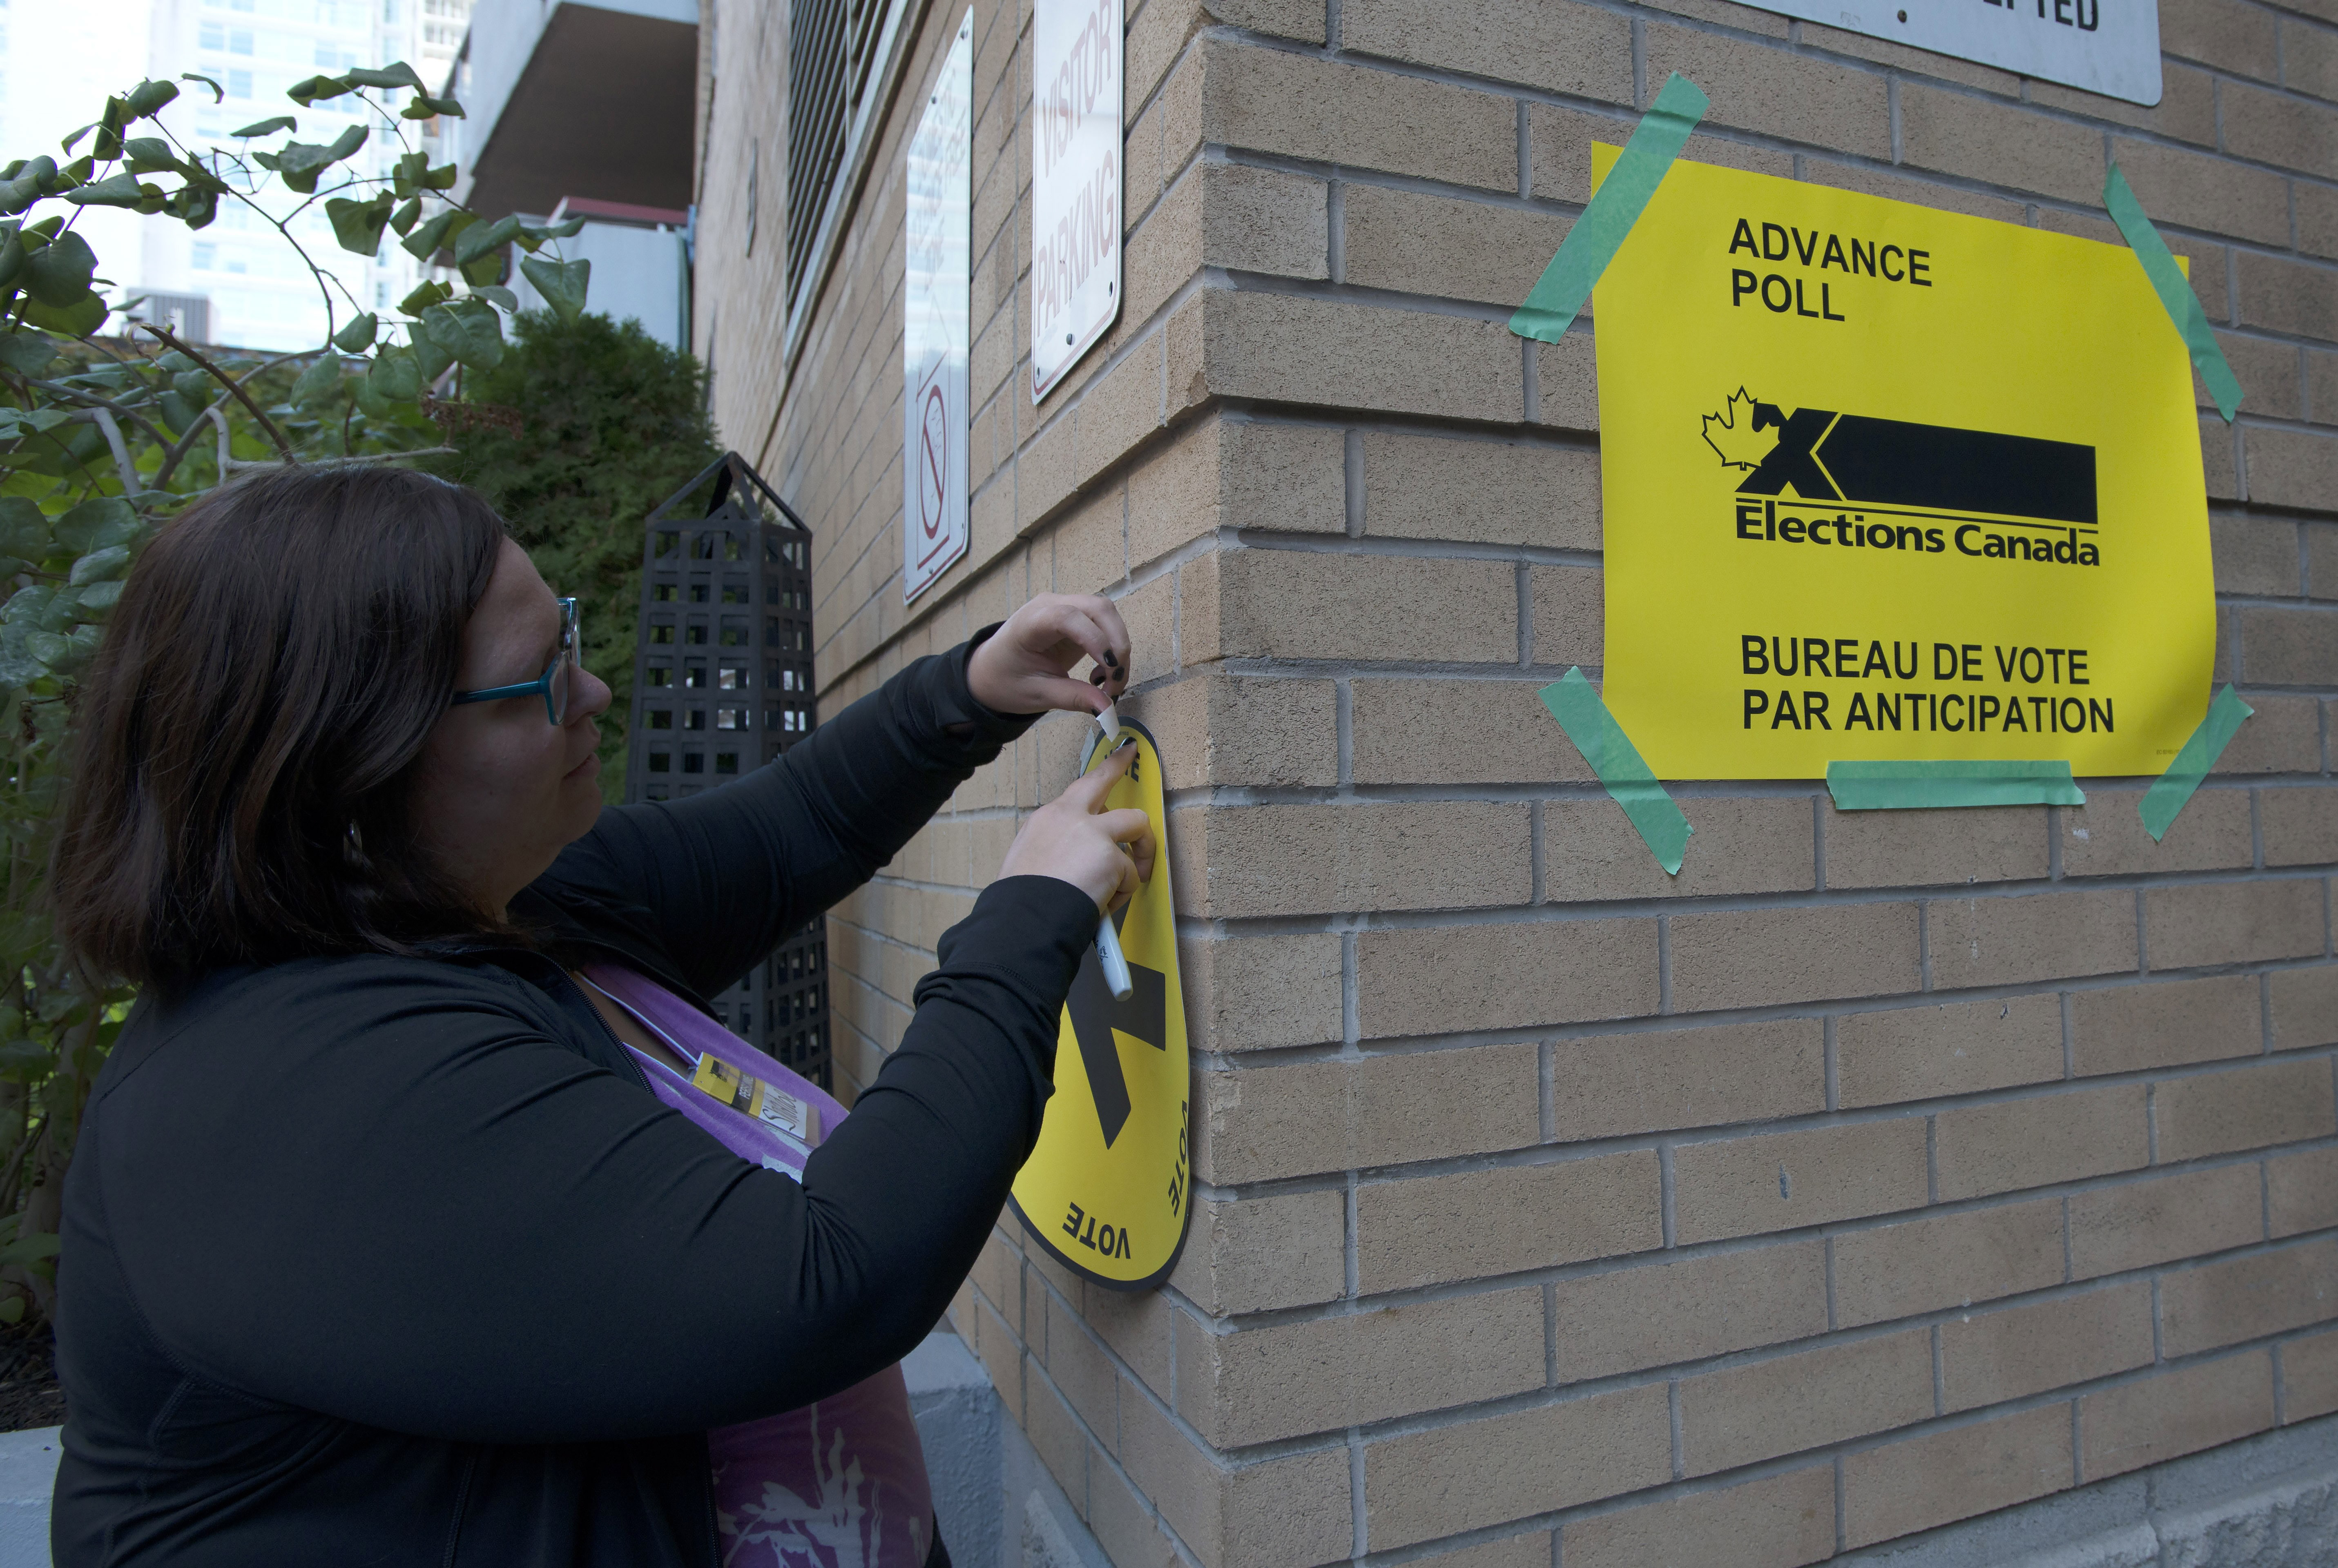 More Than 4 7m Canadians Voted In Advance Polls Says Elections Canada